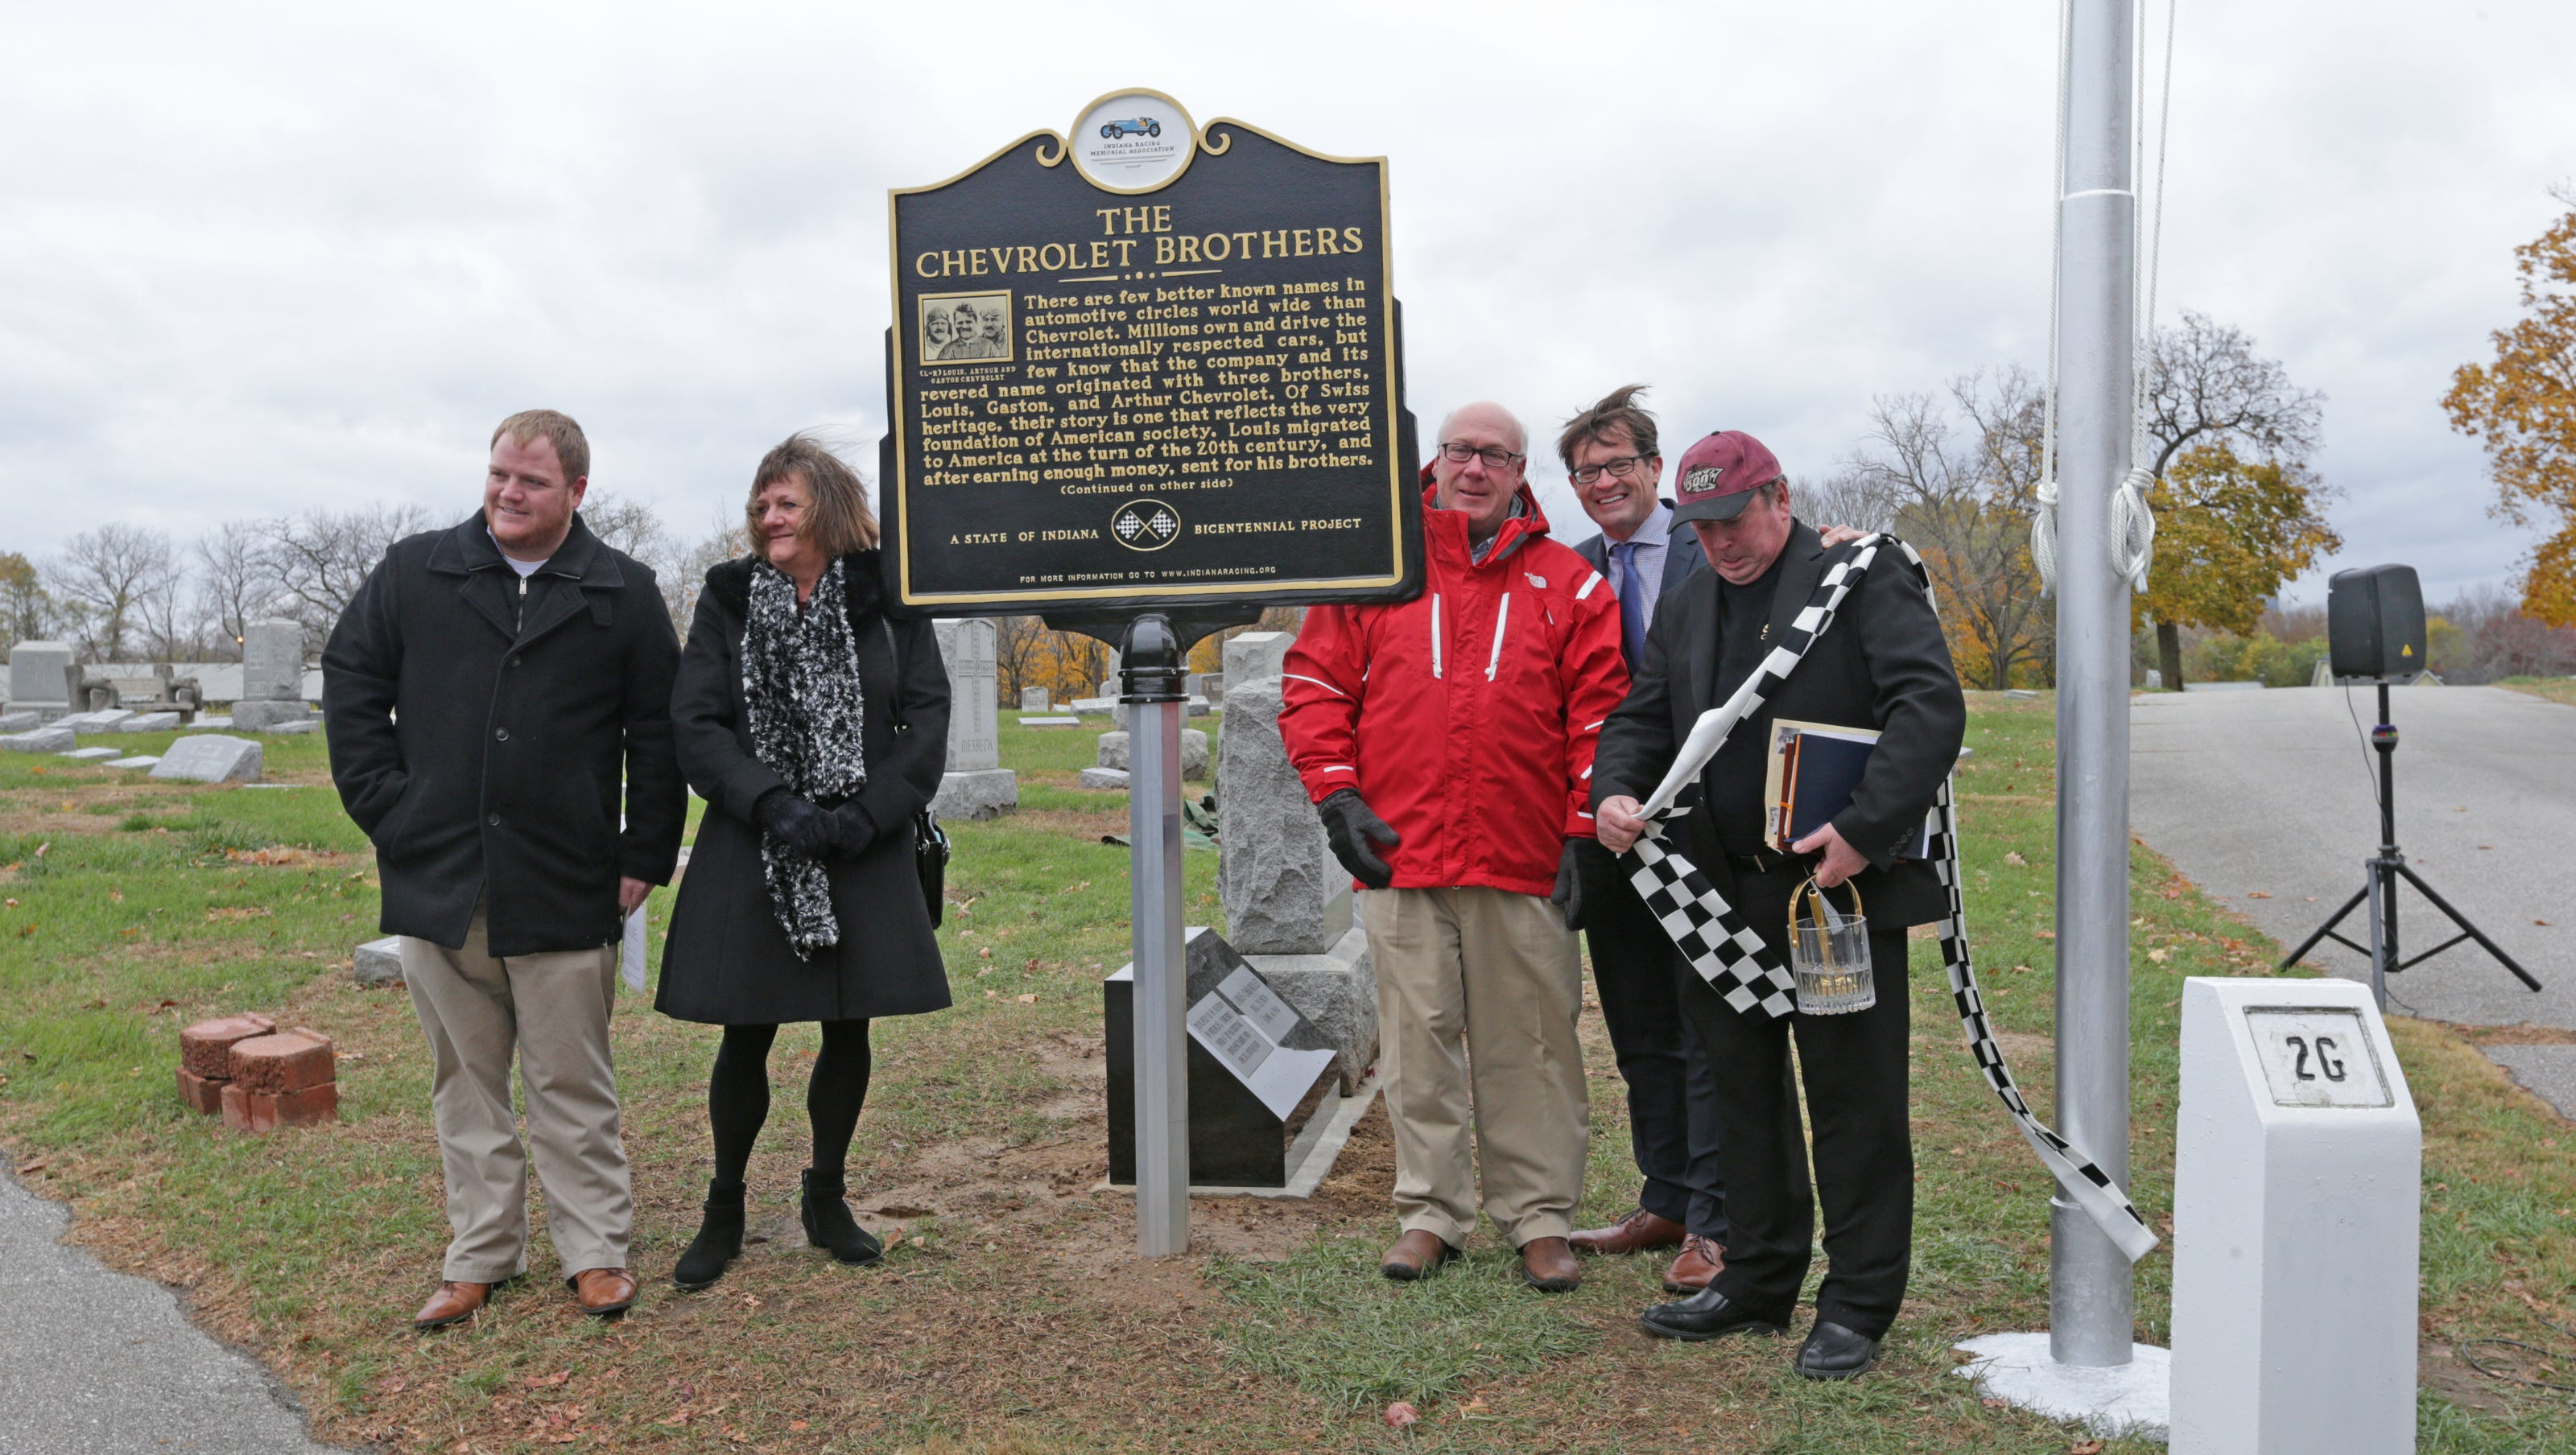 New grave and historical marks unveiled for famed Chevrolet Brothers